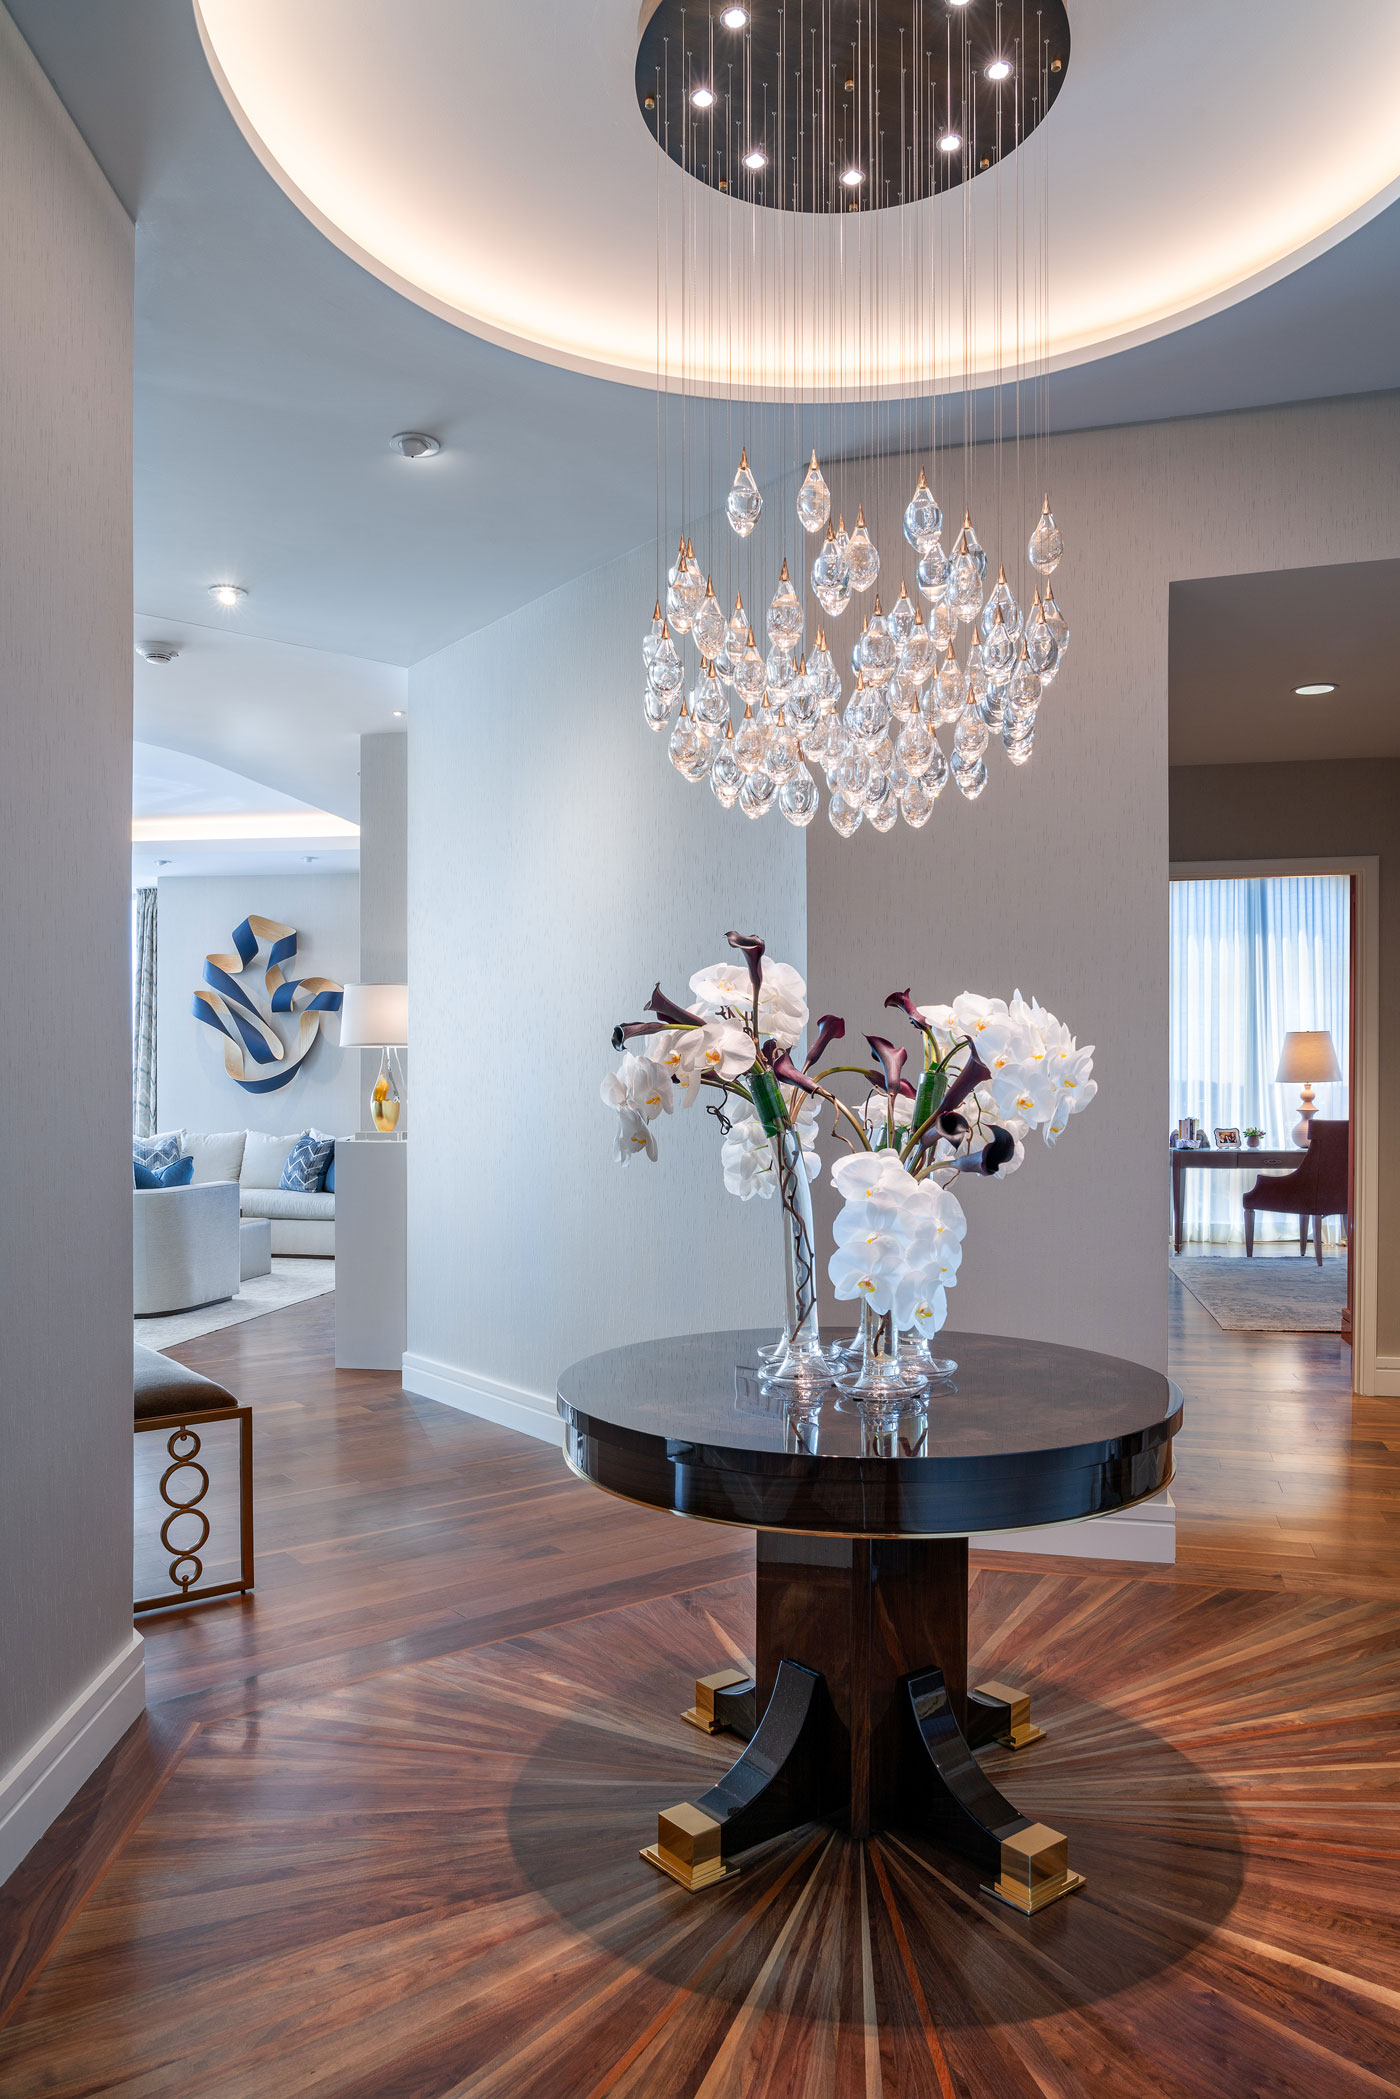 The breathtaking foyer of a new residence in One Dalton, Four Seasons Hotel and Private Residences designed by Carter & Company